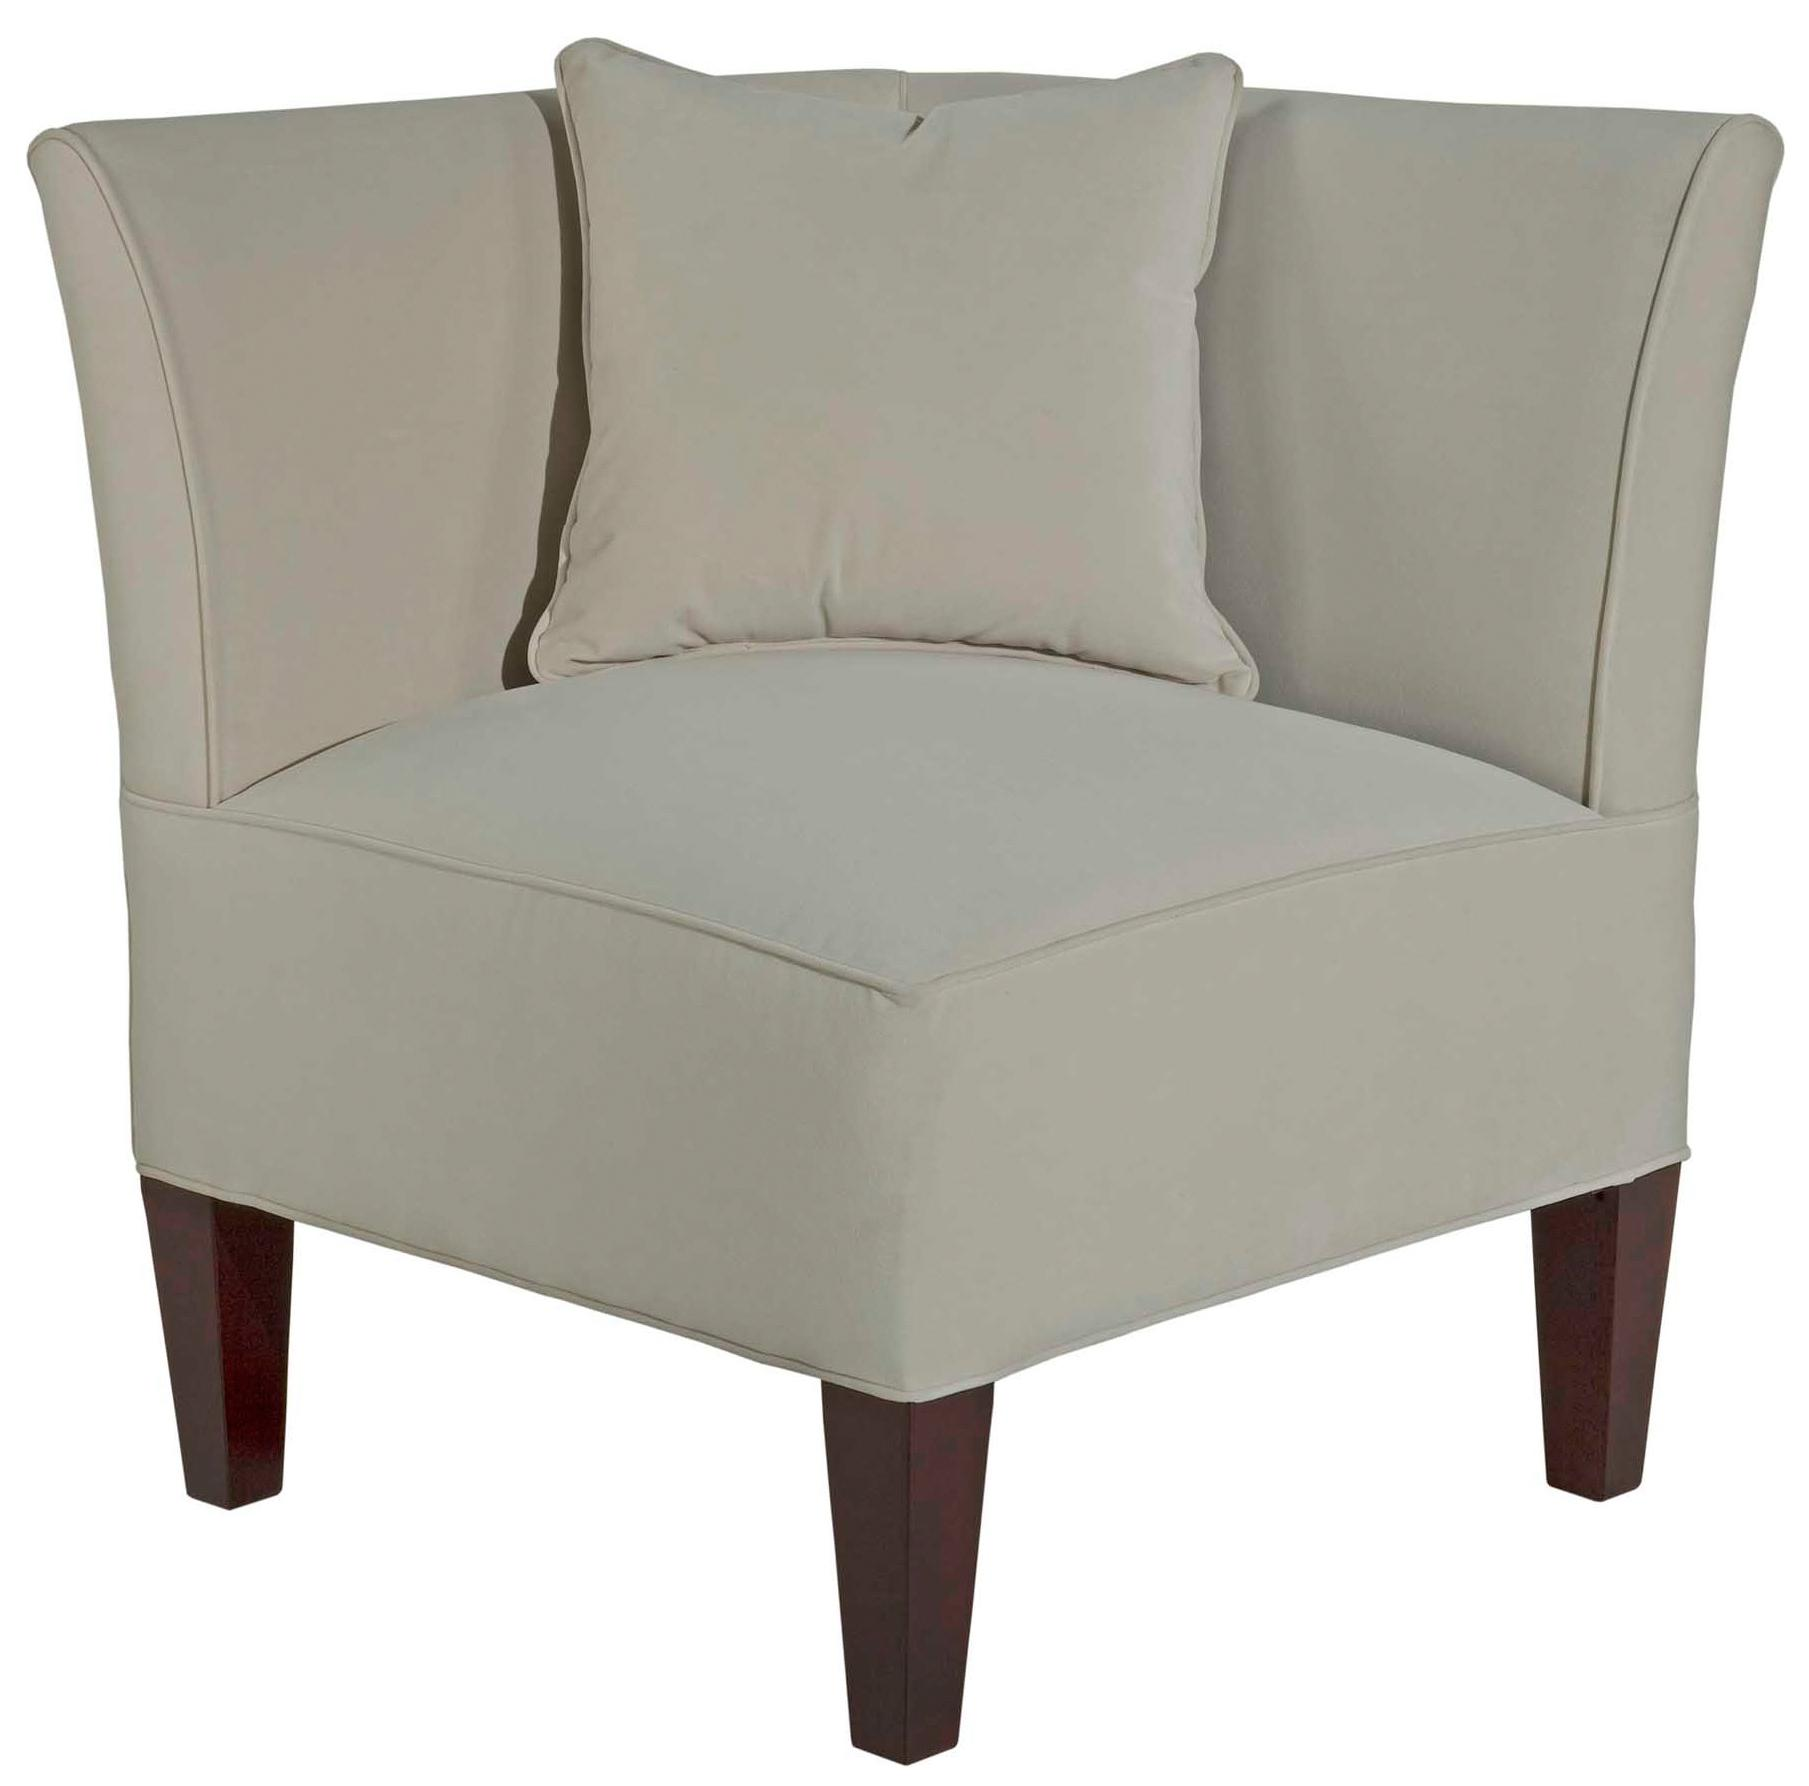 Broyhill Furniture Caitlyn Corner Chair with Track Arms - AHFA ...